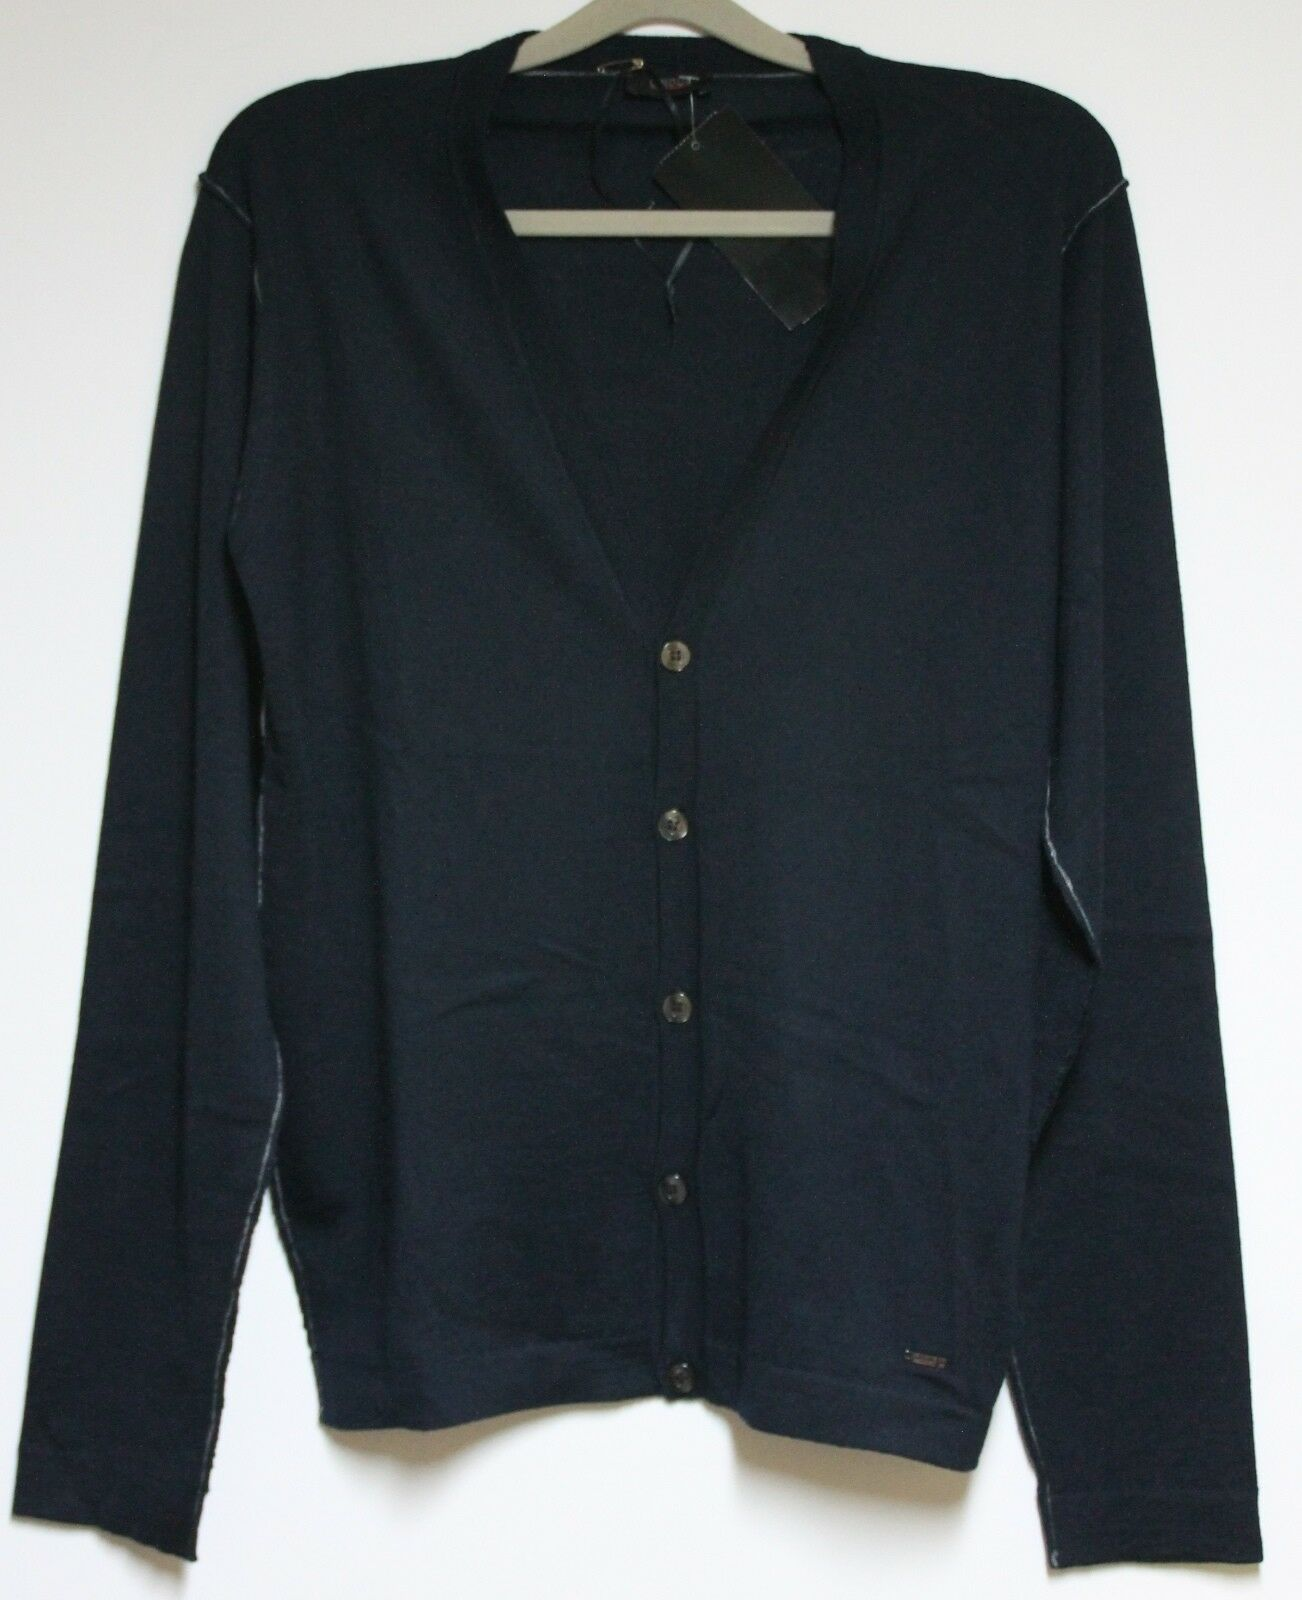 Cinque Knit Cardigan Cimiller Men's in Dark bluee SIZE S NEW with LABEL